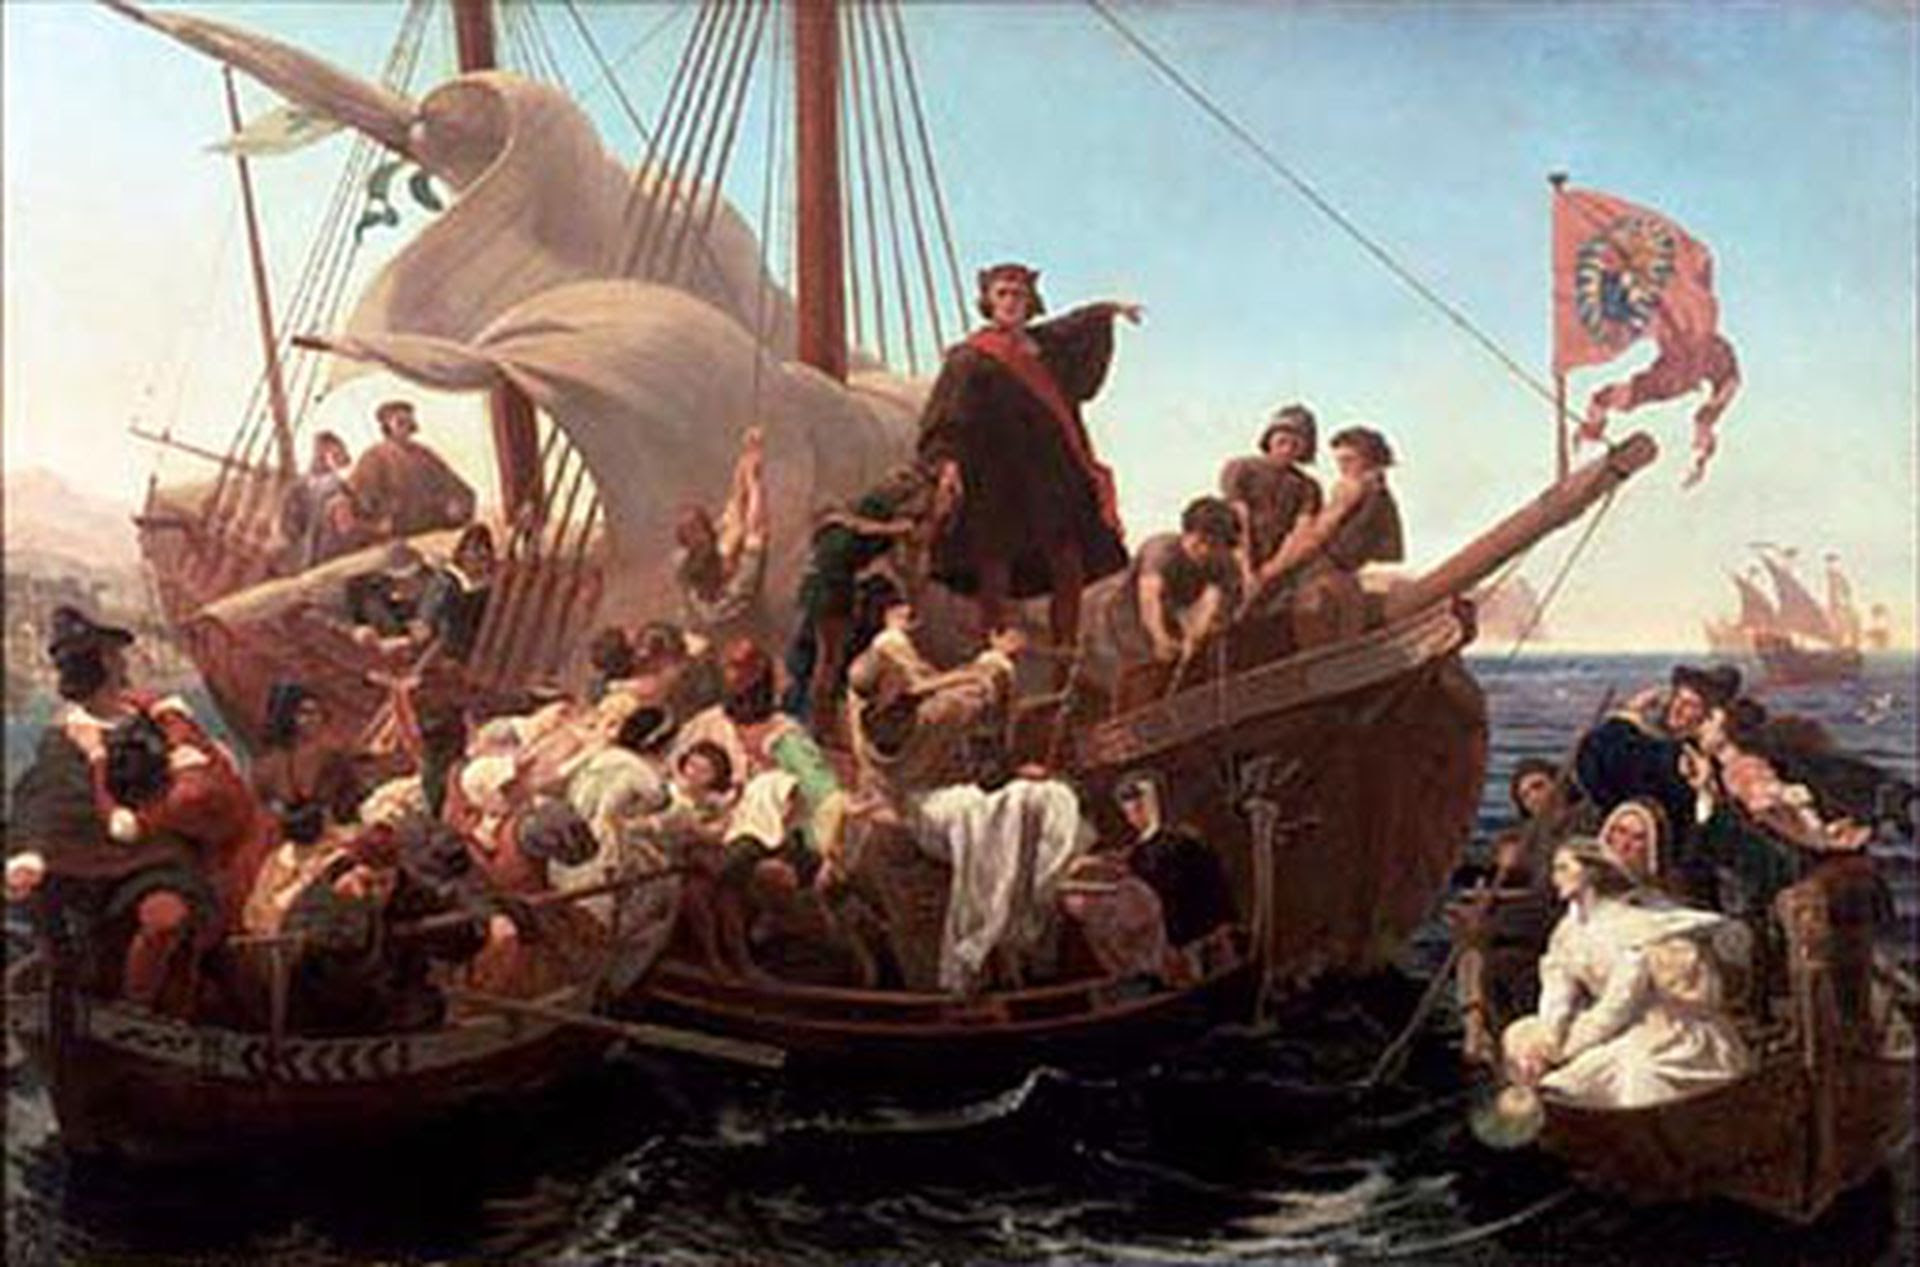 Christopher Columbus on Santa Maria in 1492.